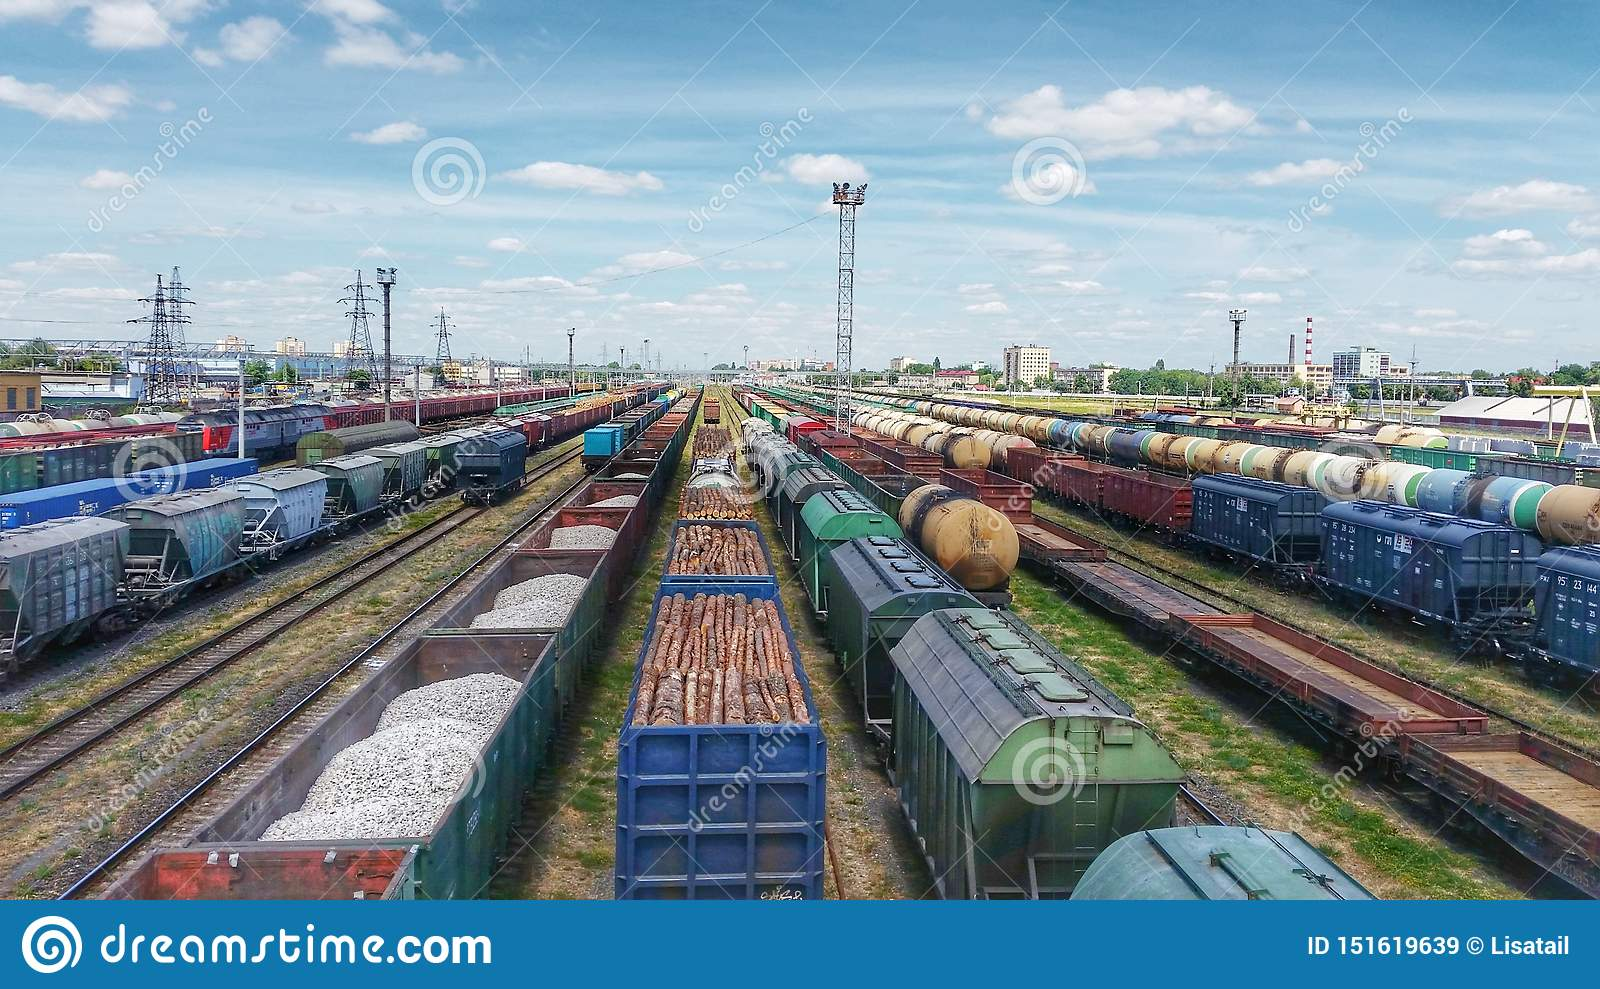 Top view of cargo trains. Aerial view from flying drone of colorful freight trains on the railway station